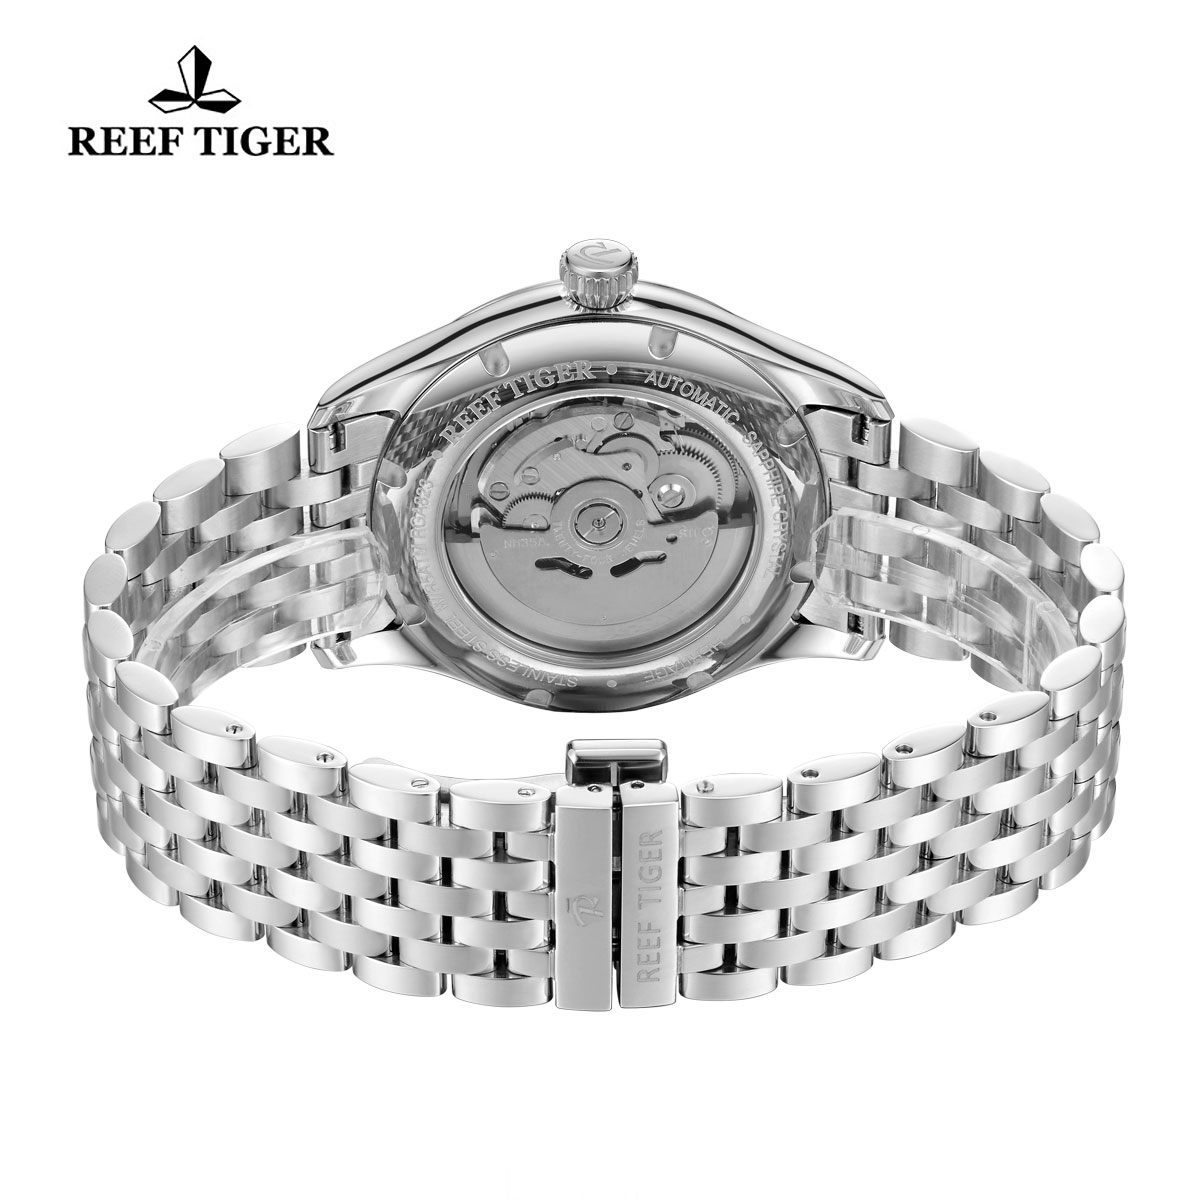 Reef Tiger Heritage II Dress Watch Automatic Blue Dial Steel Case RGA8232-YLY